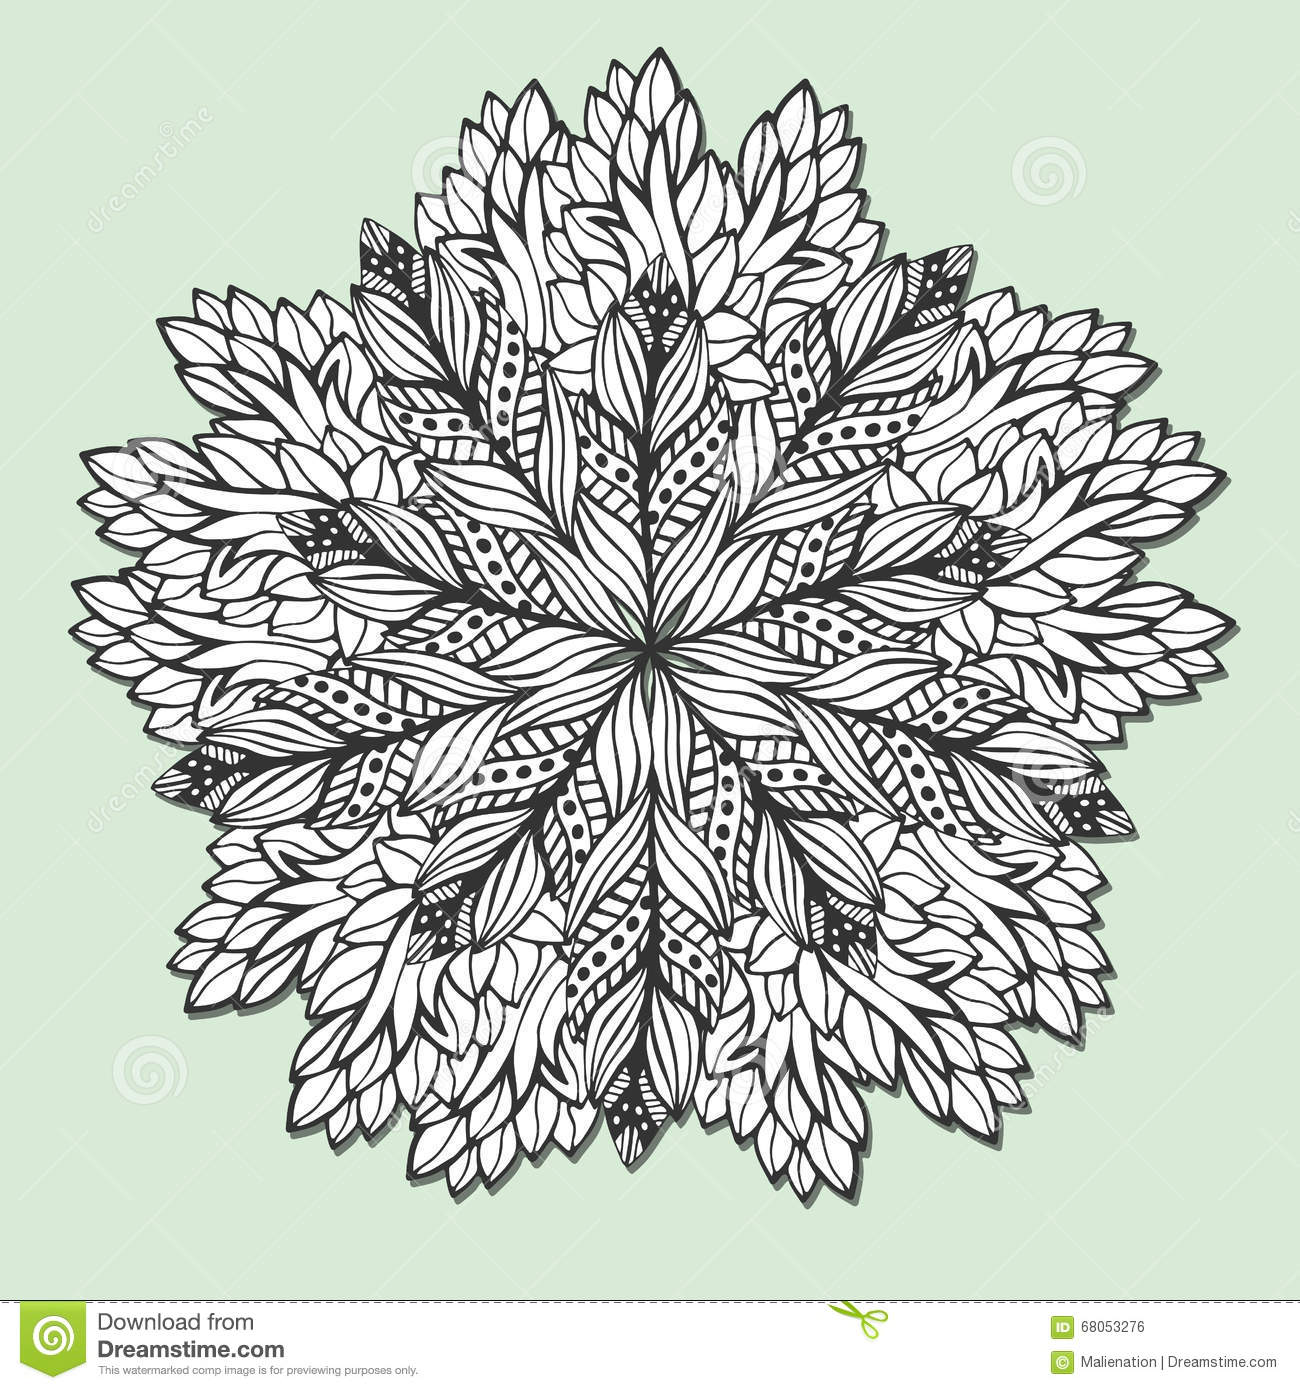 Unique mandala coloring pages - Unique Mandala With Leaves Round Zentangle For Coloring Book Pages Circle Ornament Pattern For